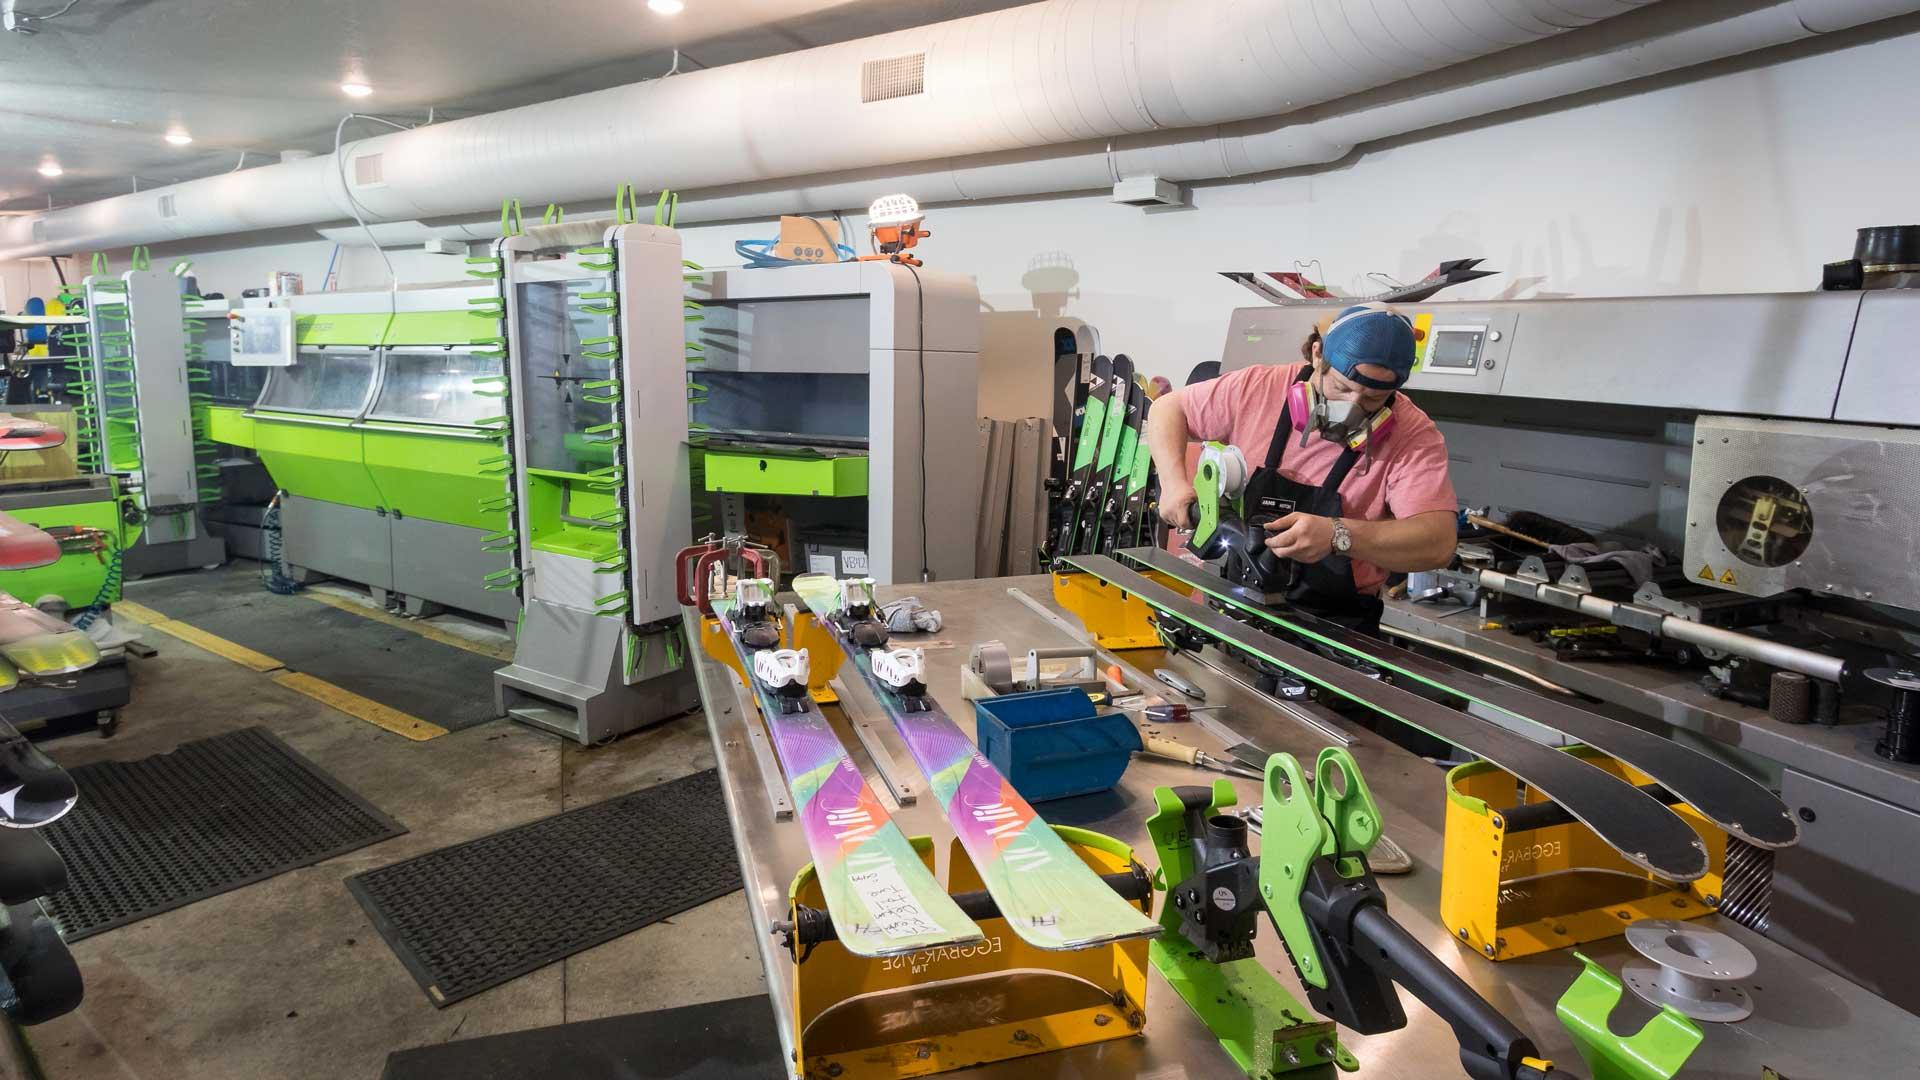 Tuning skis at Rennstall in Park City, Utah